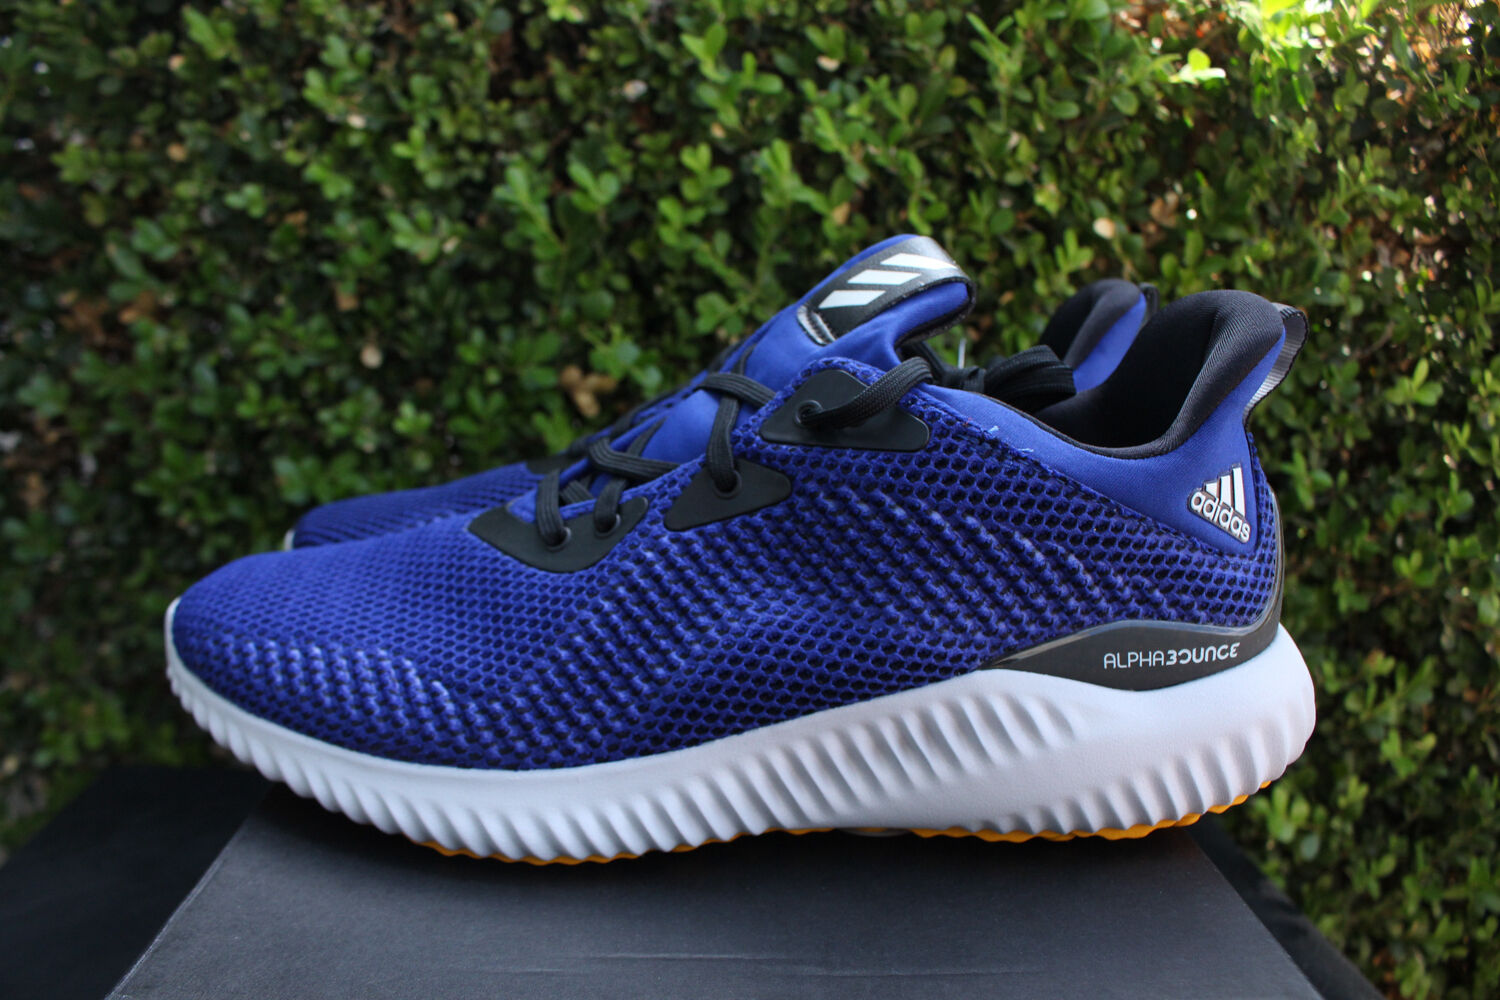 ADIDAS ALPHABOUNCE EM SZ 12 MYSTERY Chaussures INK CORE noir YELLOW RUNNING Chaussures MYSTERY BW1219 bffb3b